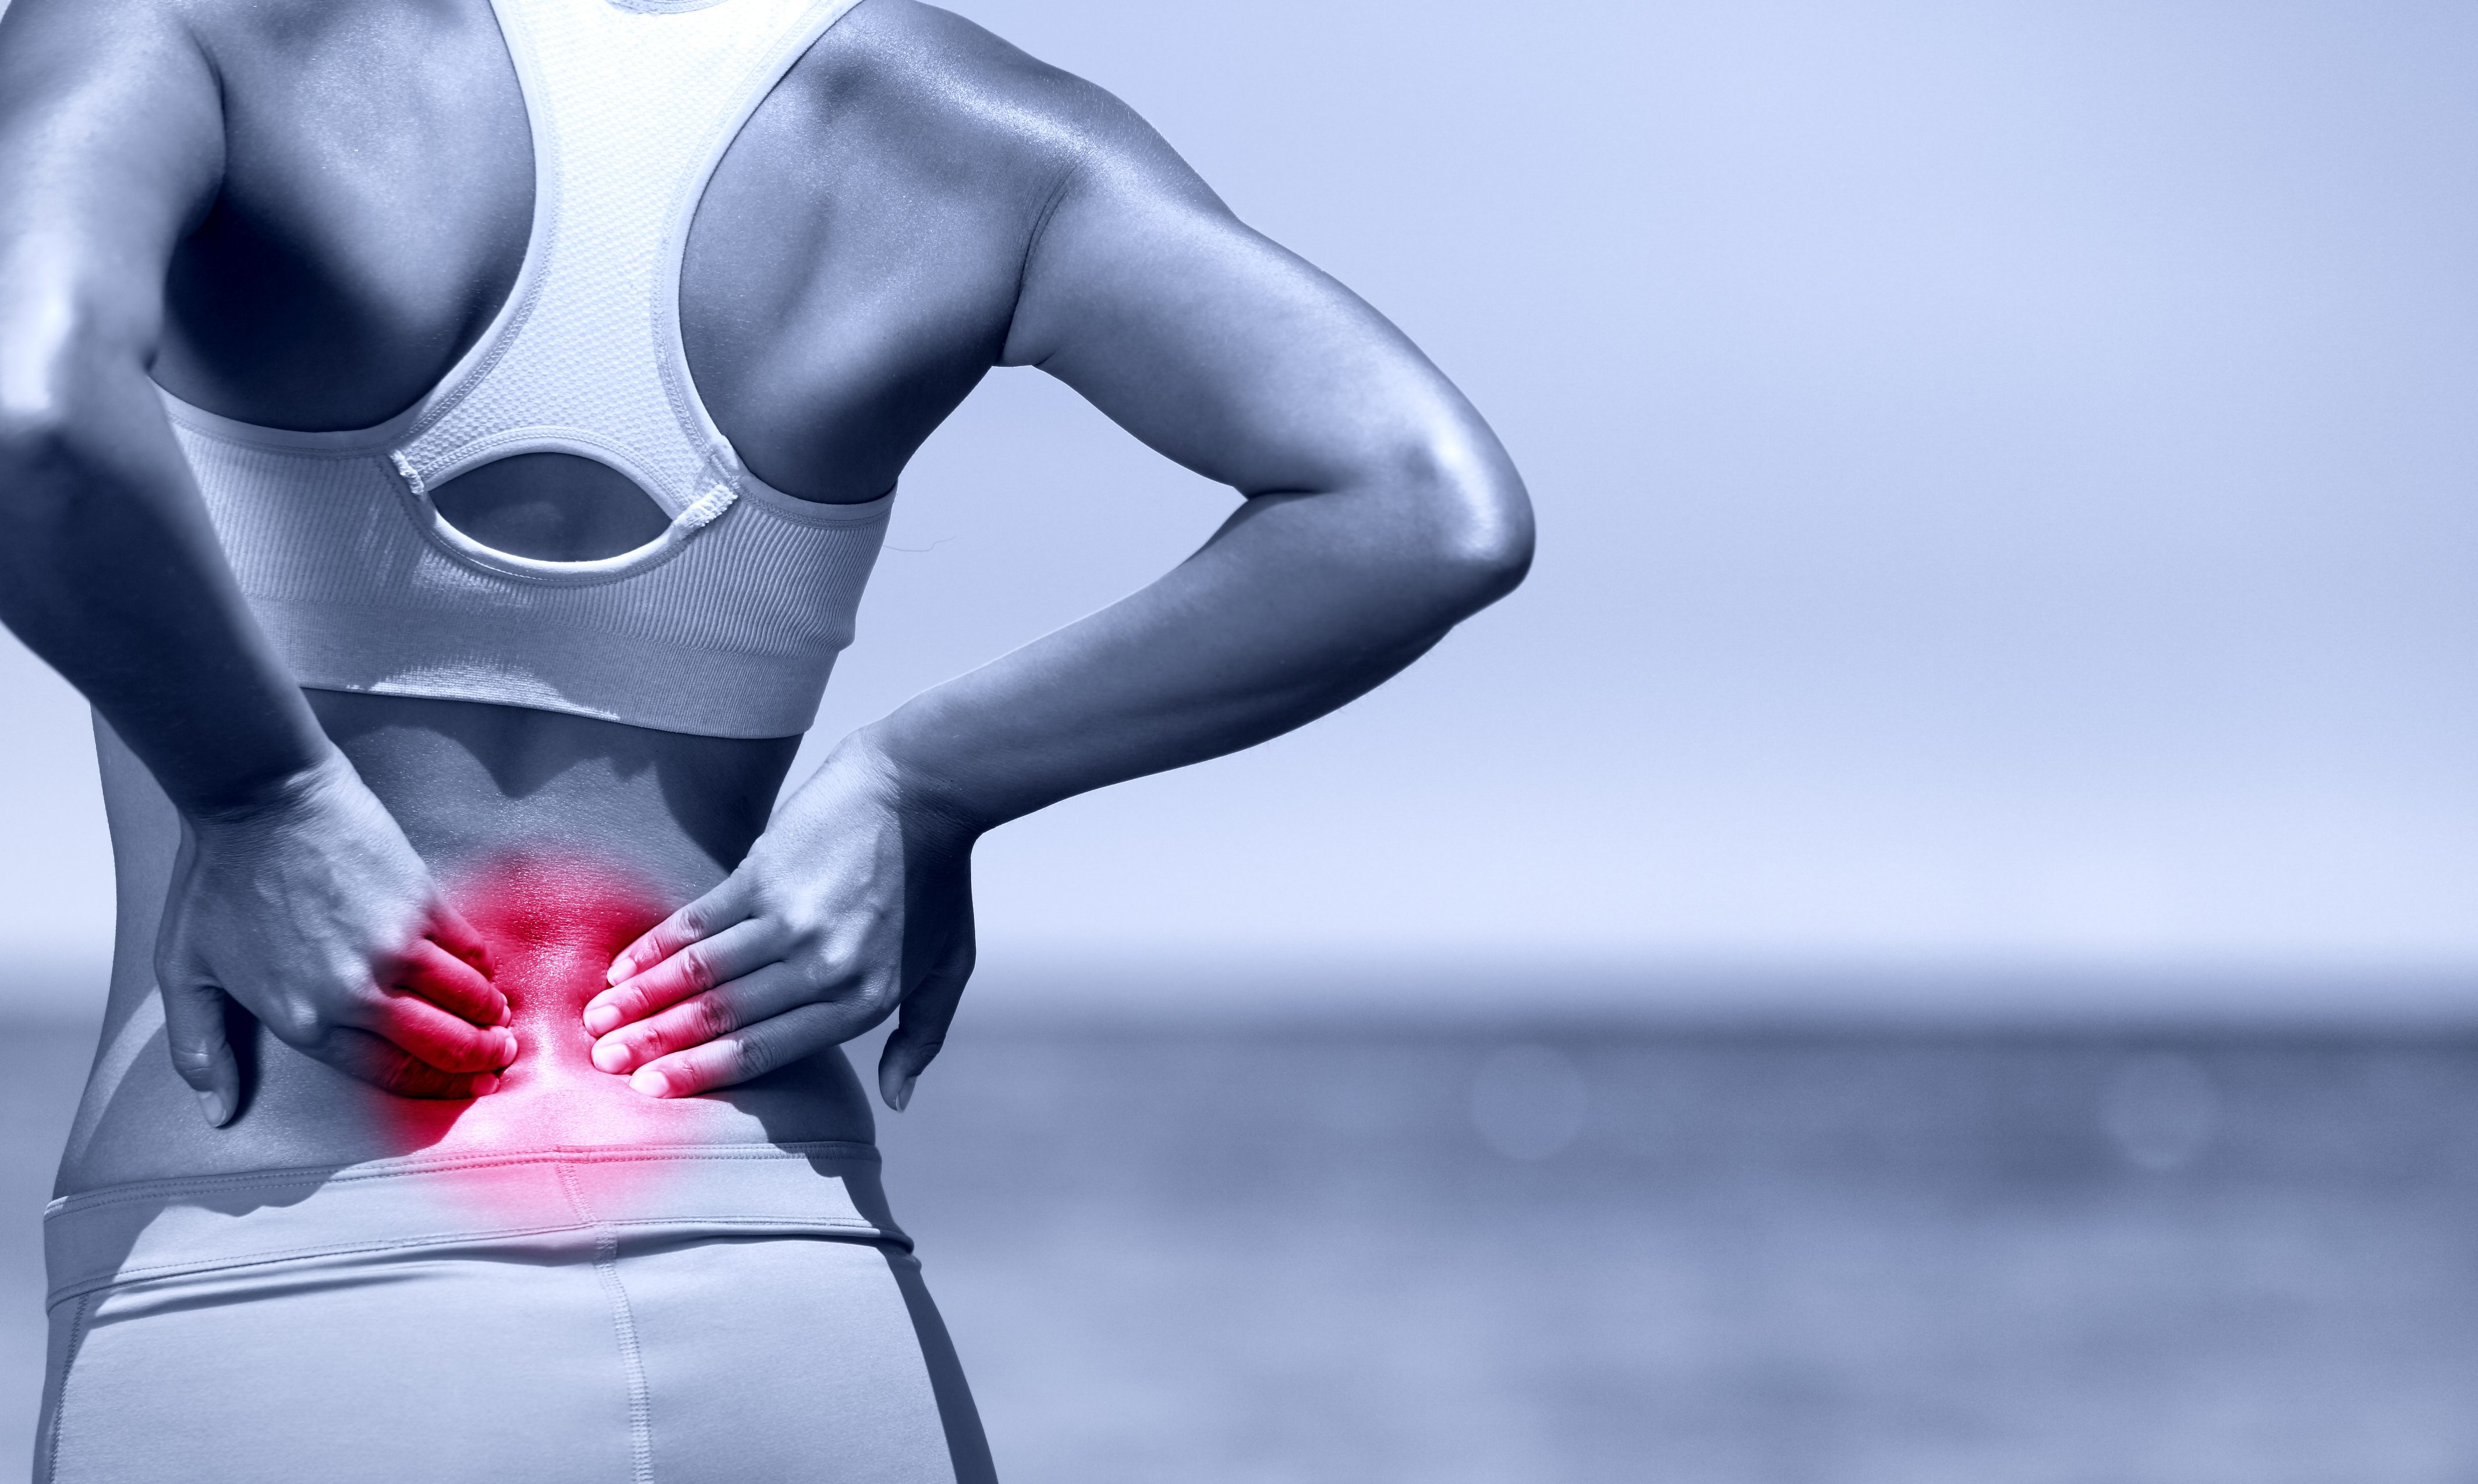 ELITE SPORTS AND SPINE CHIROPRACTIC